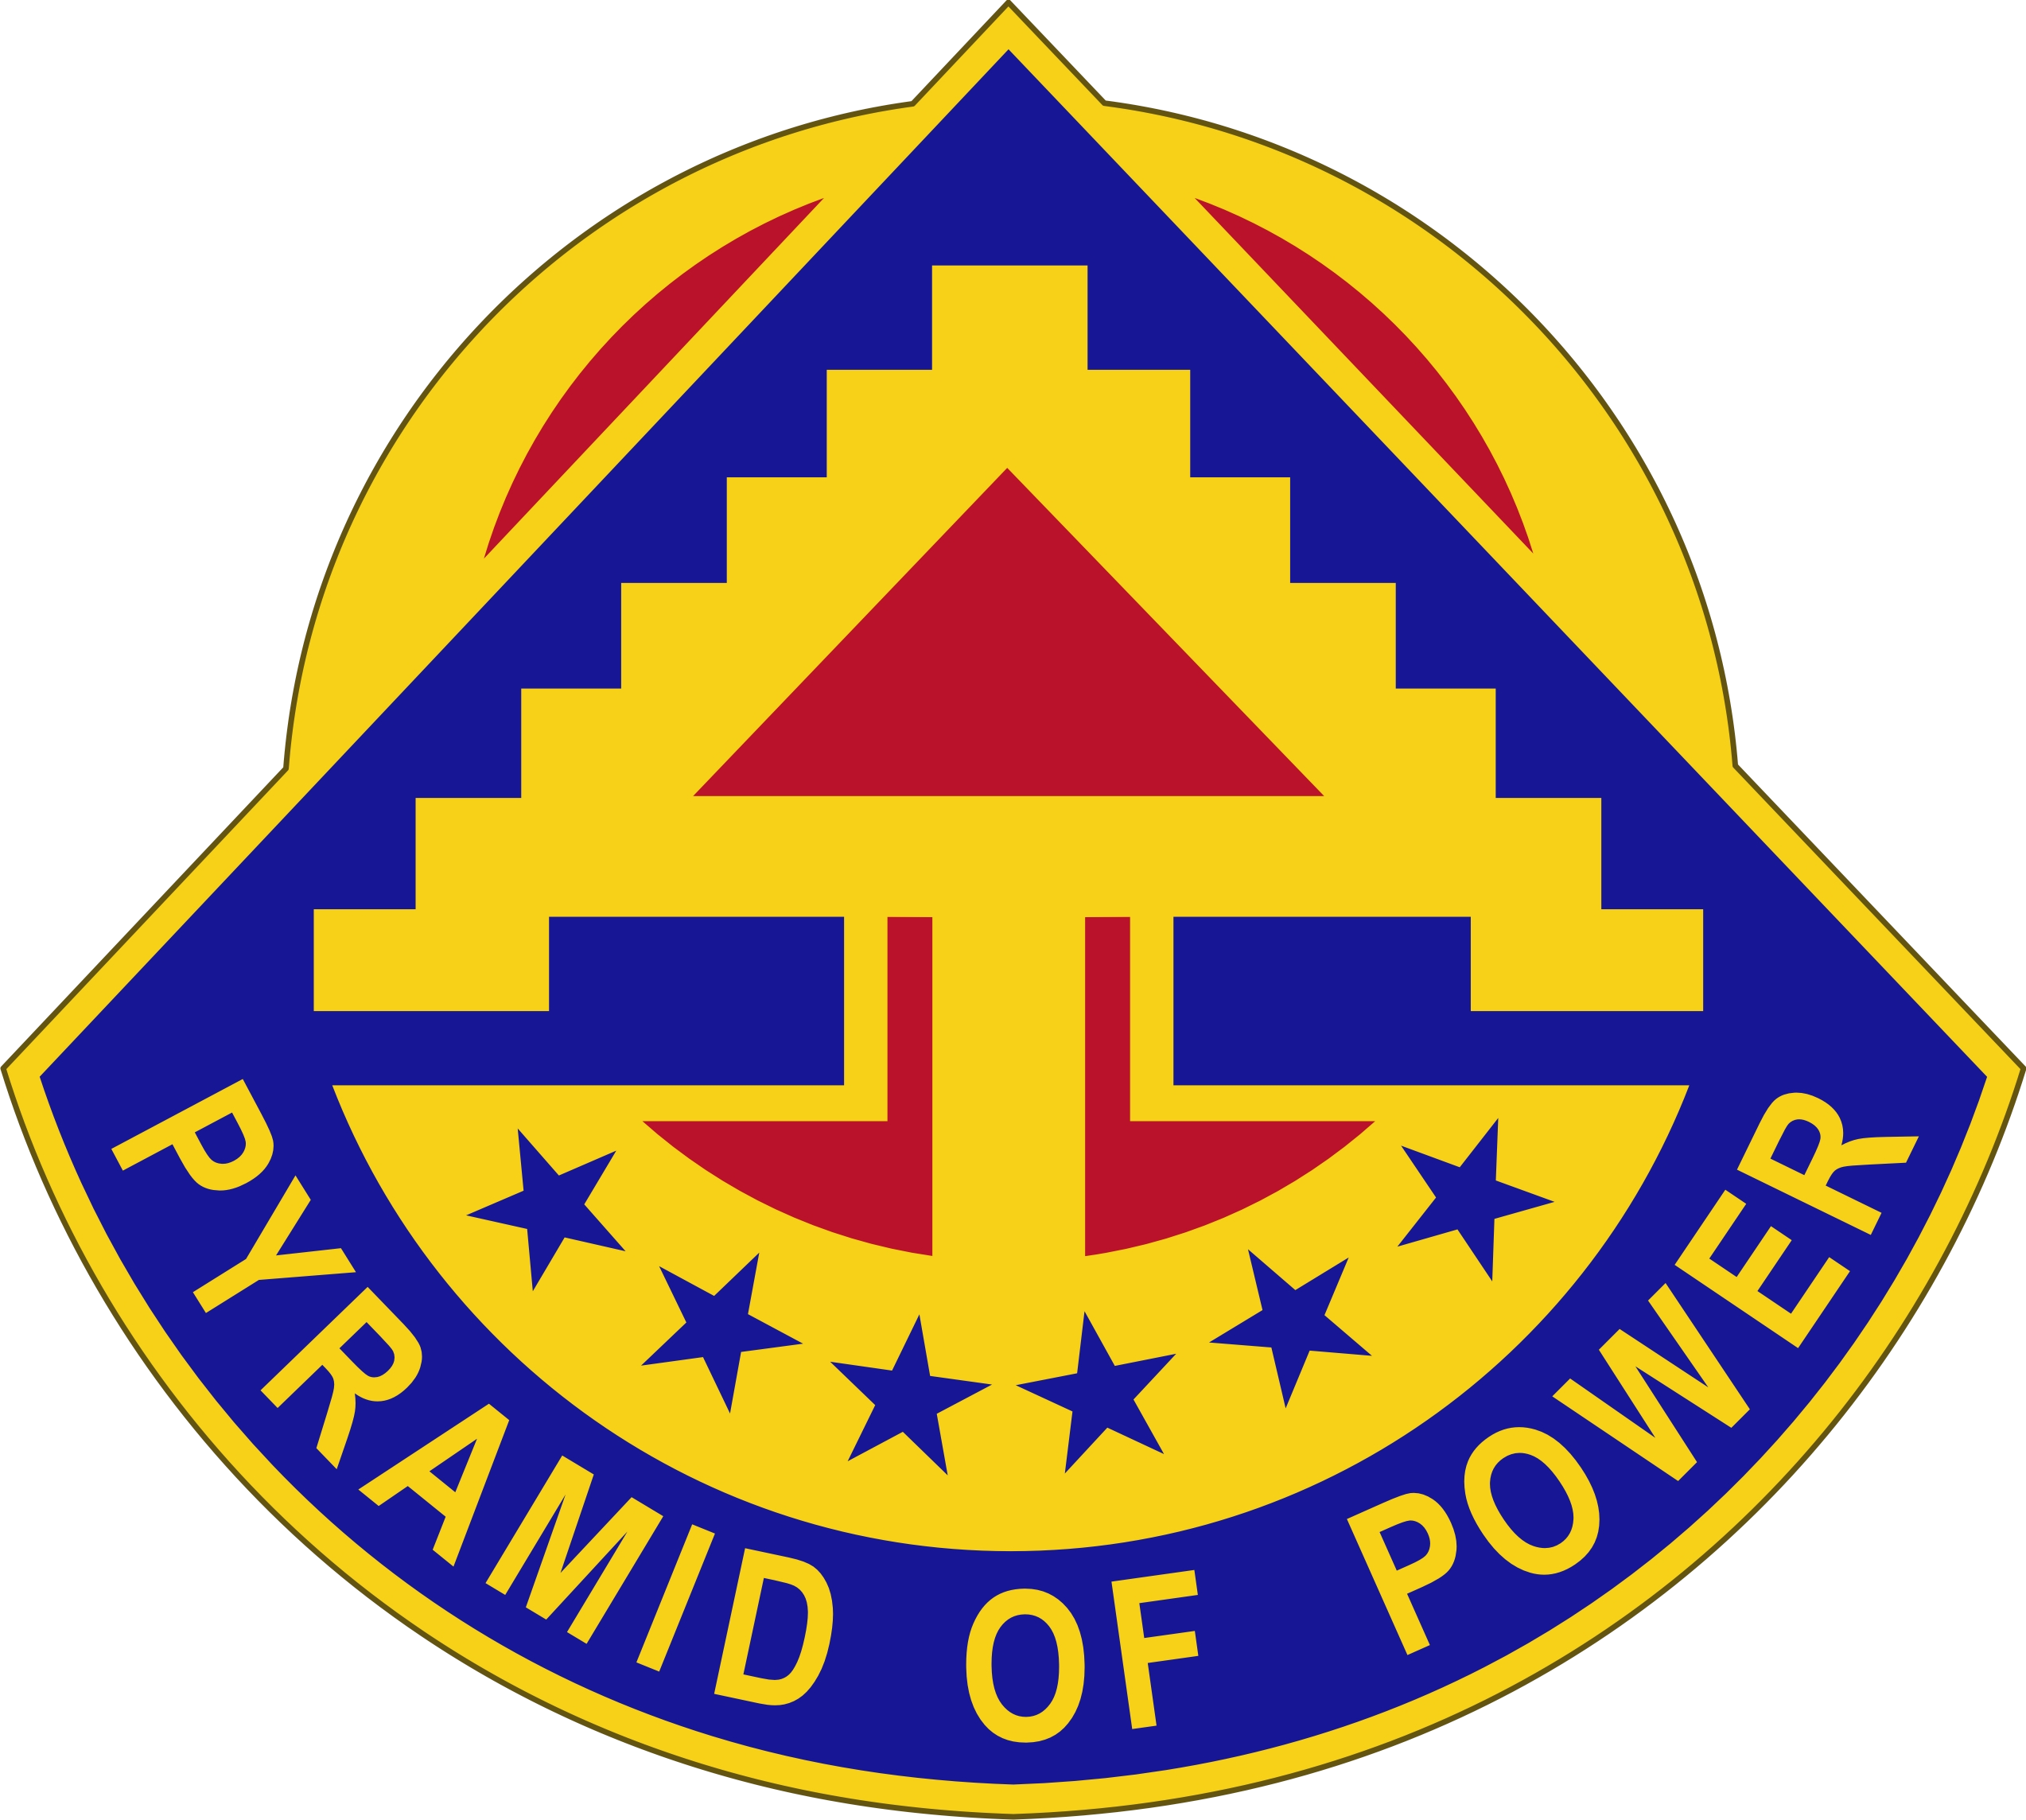 Seventh United States Army - Wikipedia